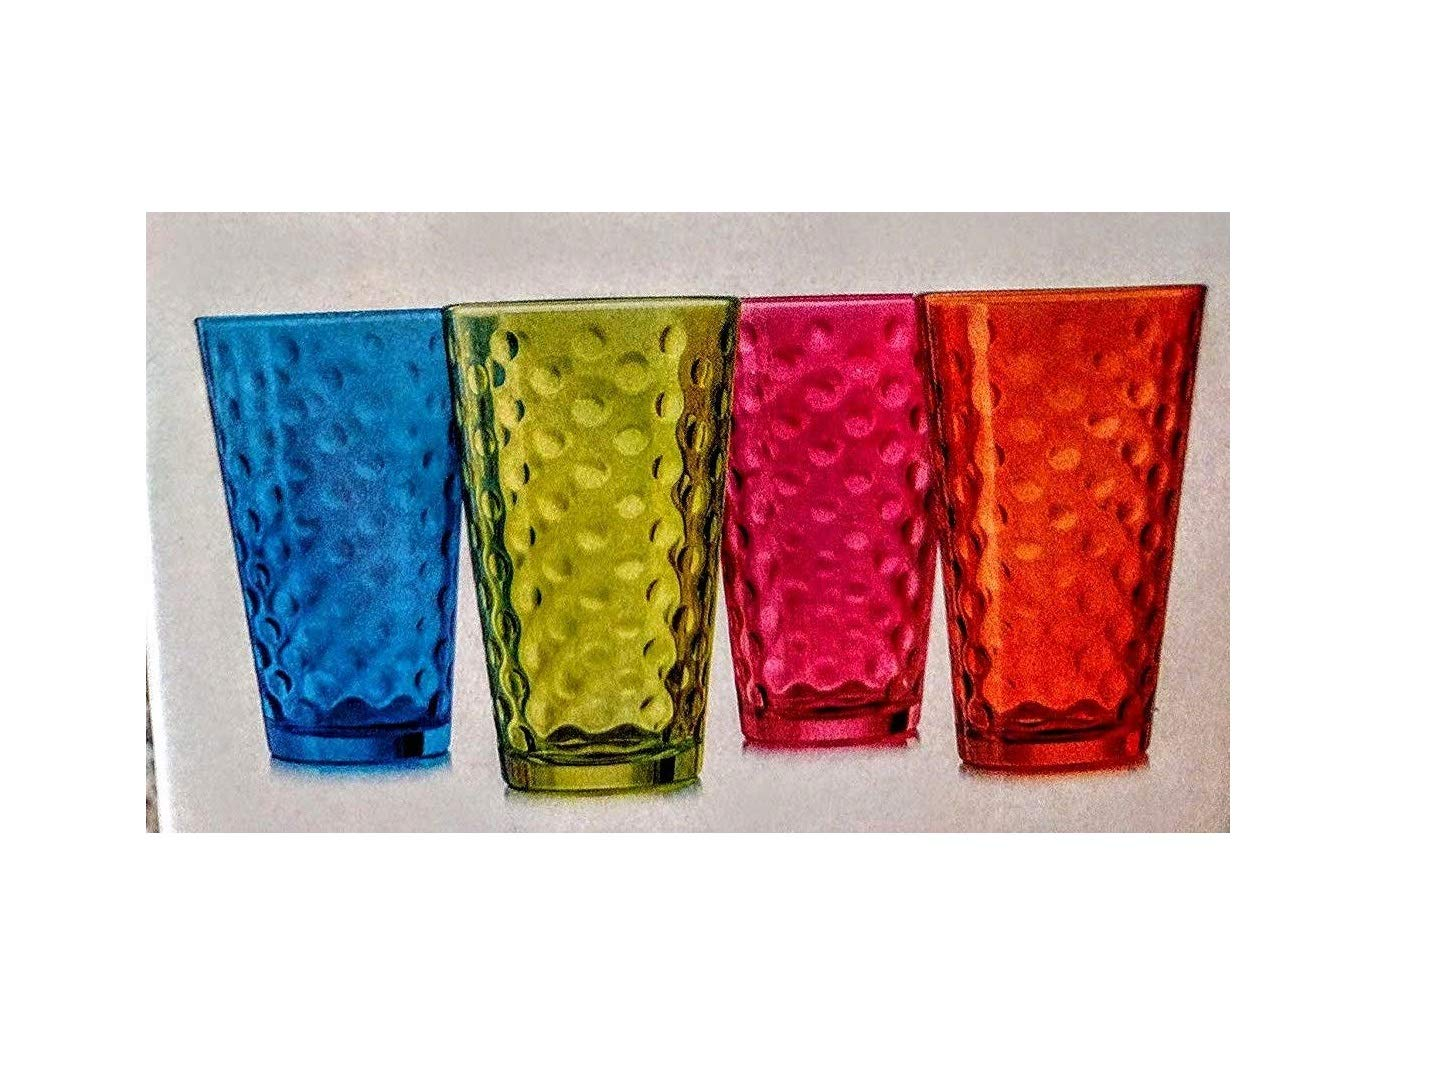 Libbey awa Cooler 16 oz Glass Drinking Glasses - Multi Color